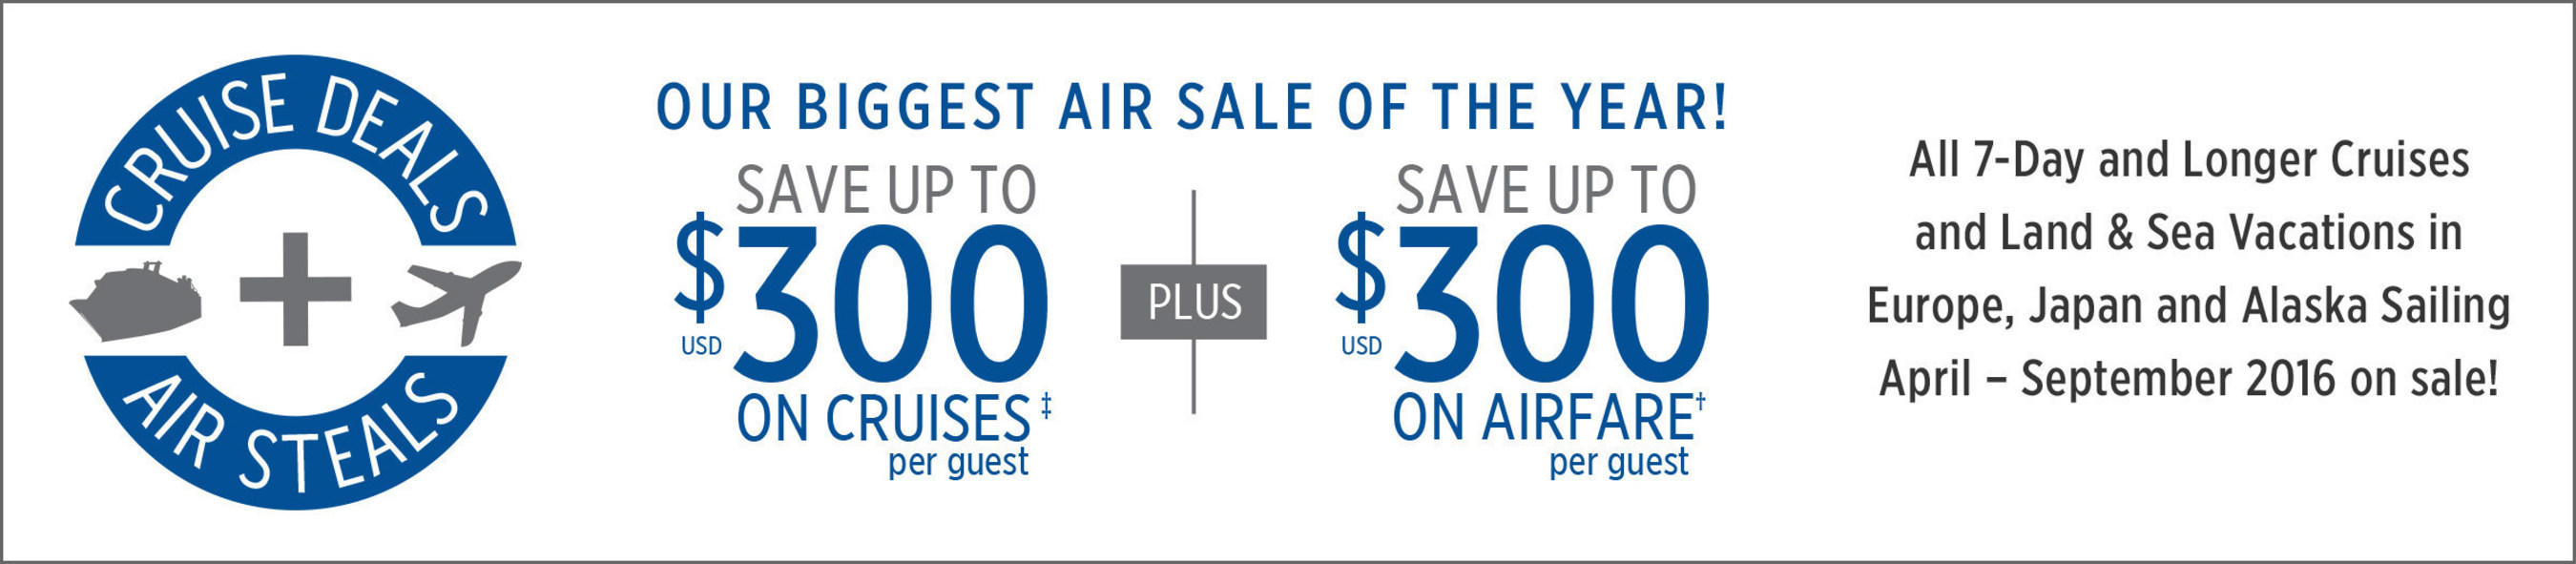 Princess Cruises Launches Biggest Airfare Sale Of The Year With - Cruises with airfare